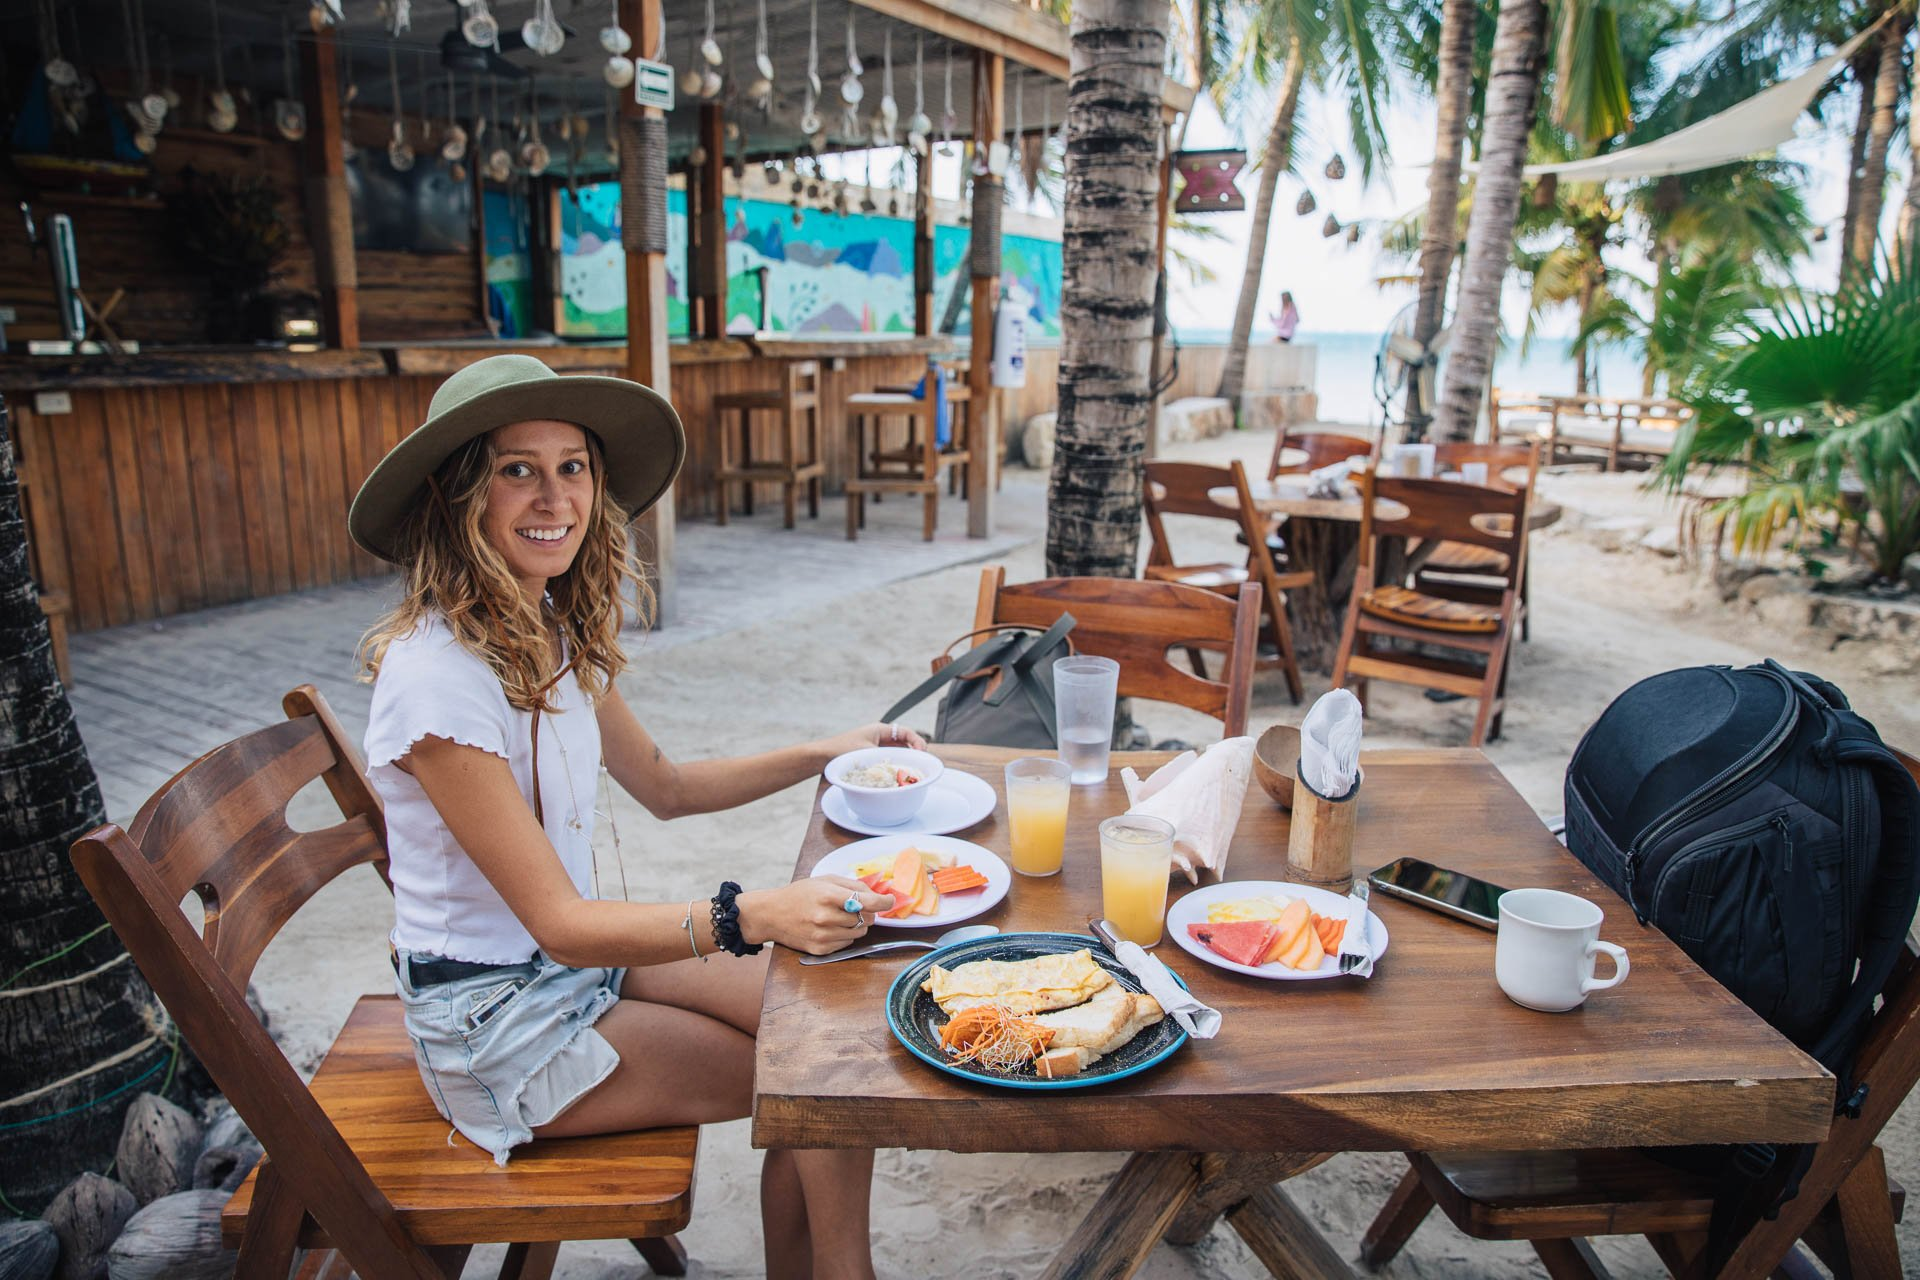 isla mujeres, things to do in isla mujeres, things to do on isla mujeres, isla mujeres things to do